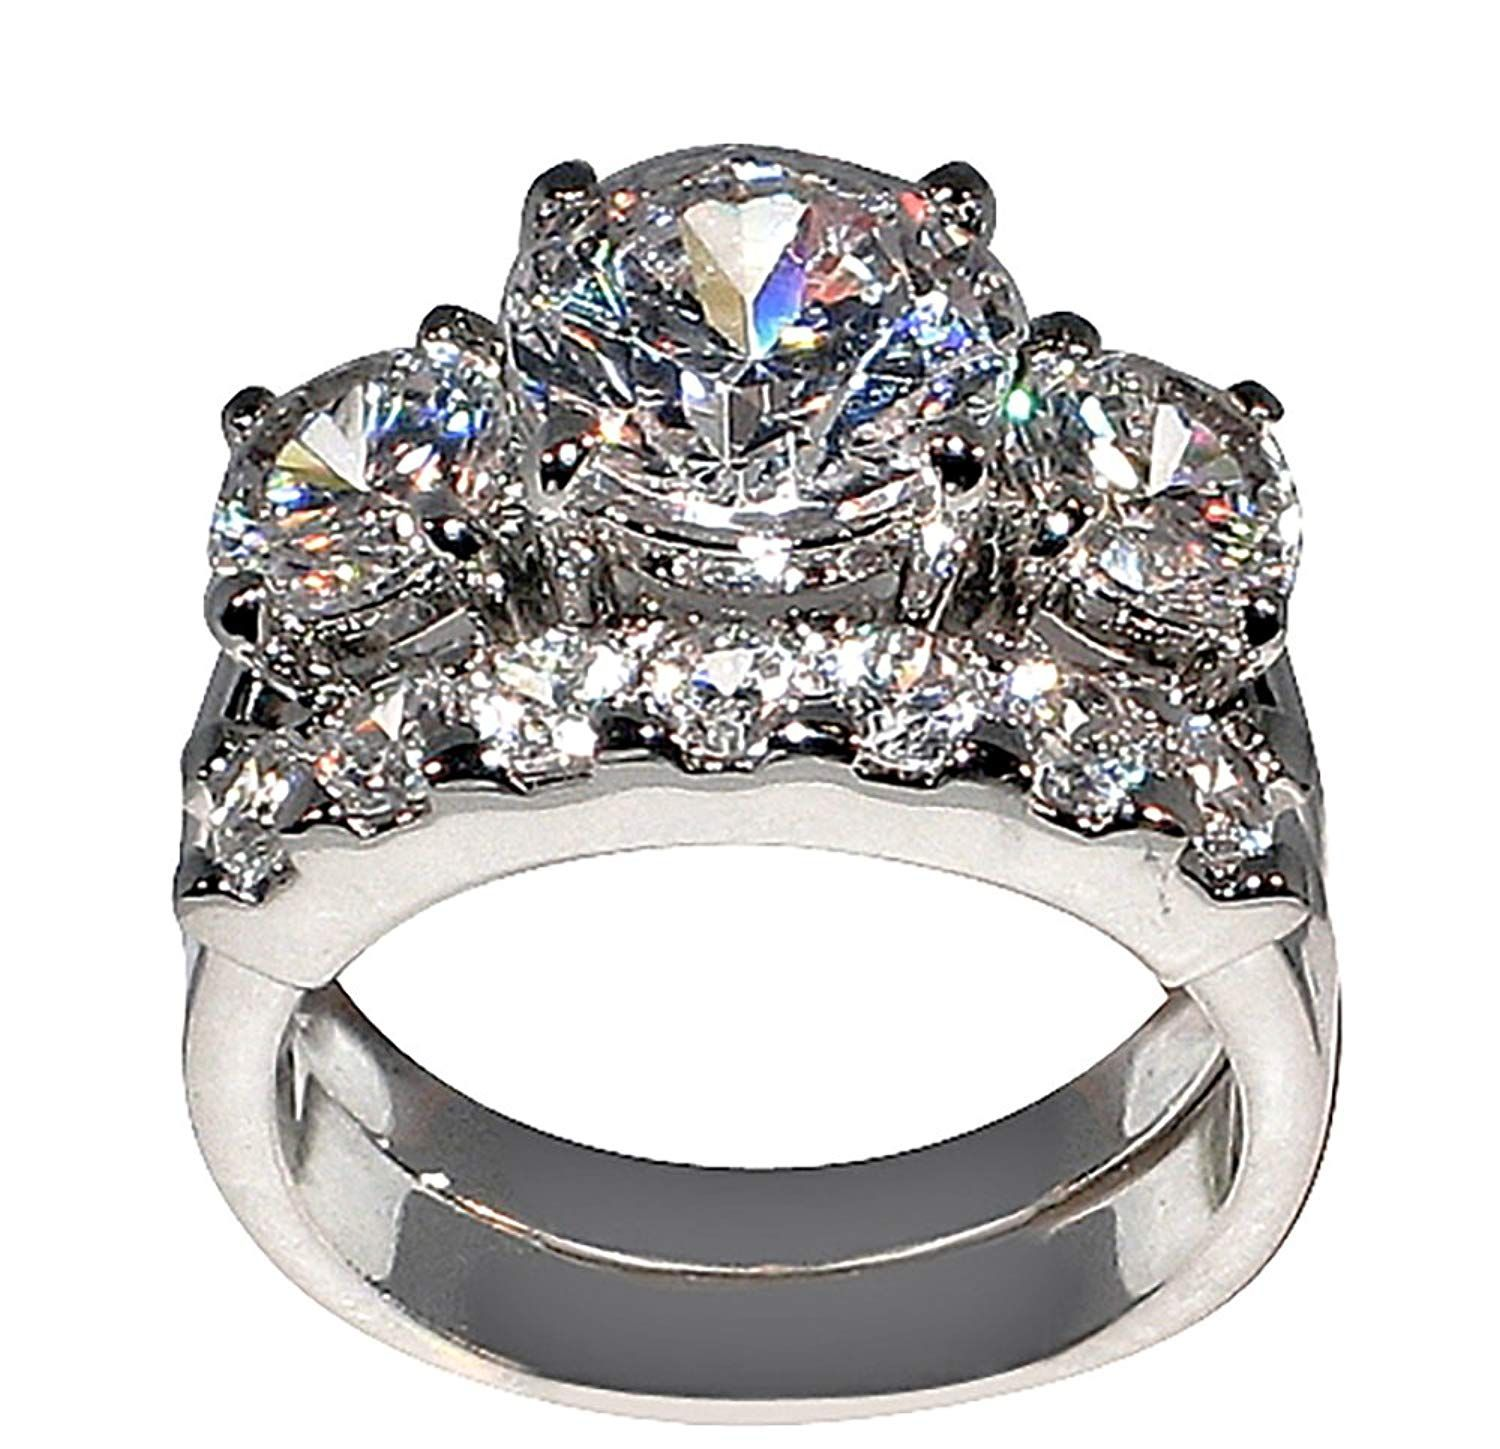 5 Ct Bold Past Present And Future Style Cubic Zirconia Cz Bridal Round Shaped Center Stone Wedding Ring Sets Round Wedding Rings Engagement Wedding Ring Sets